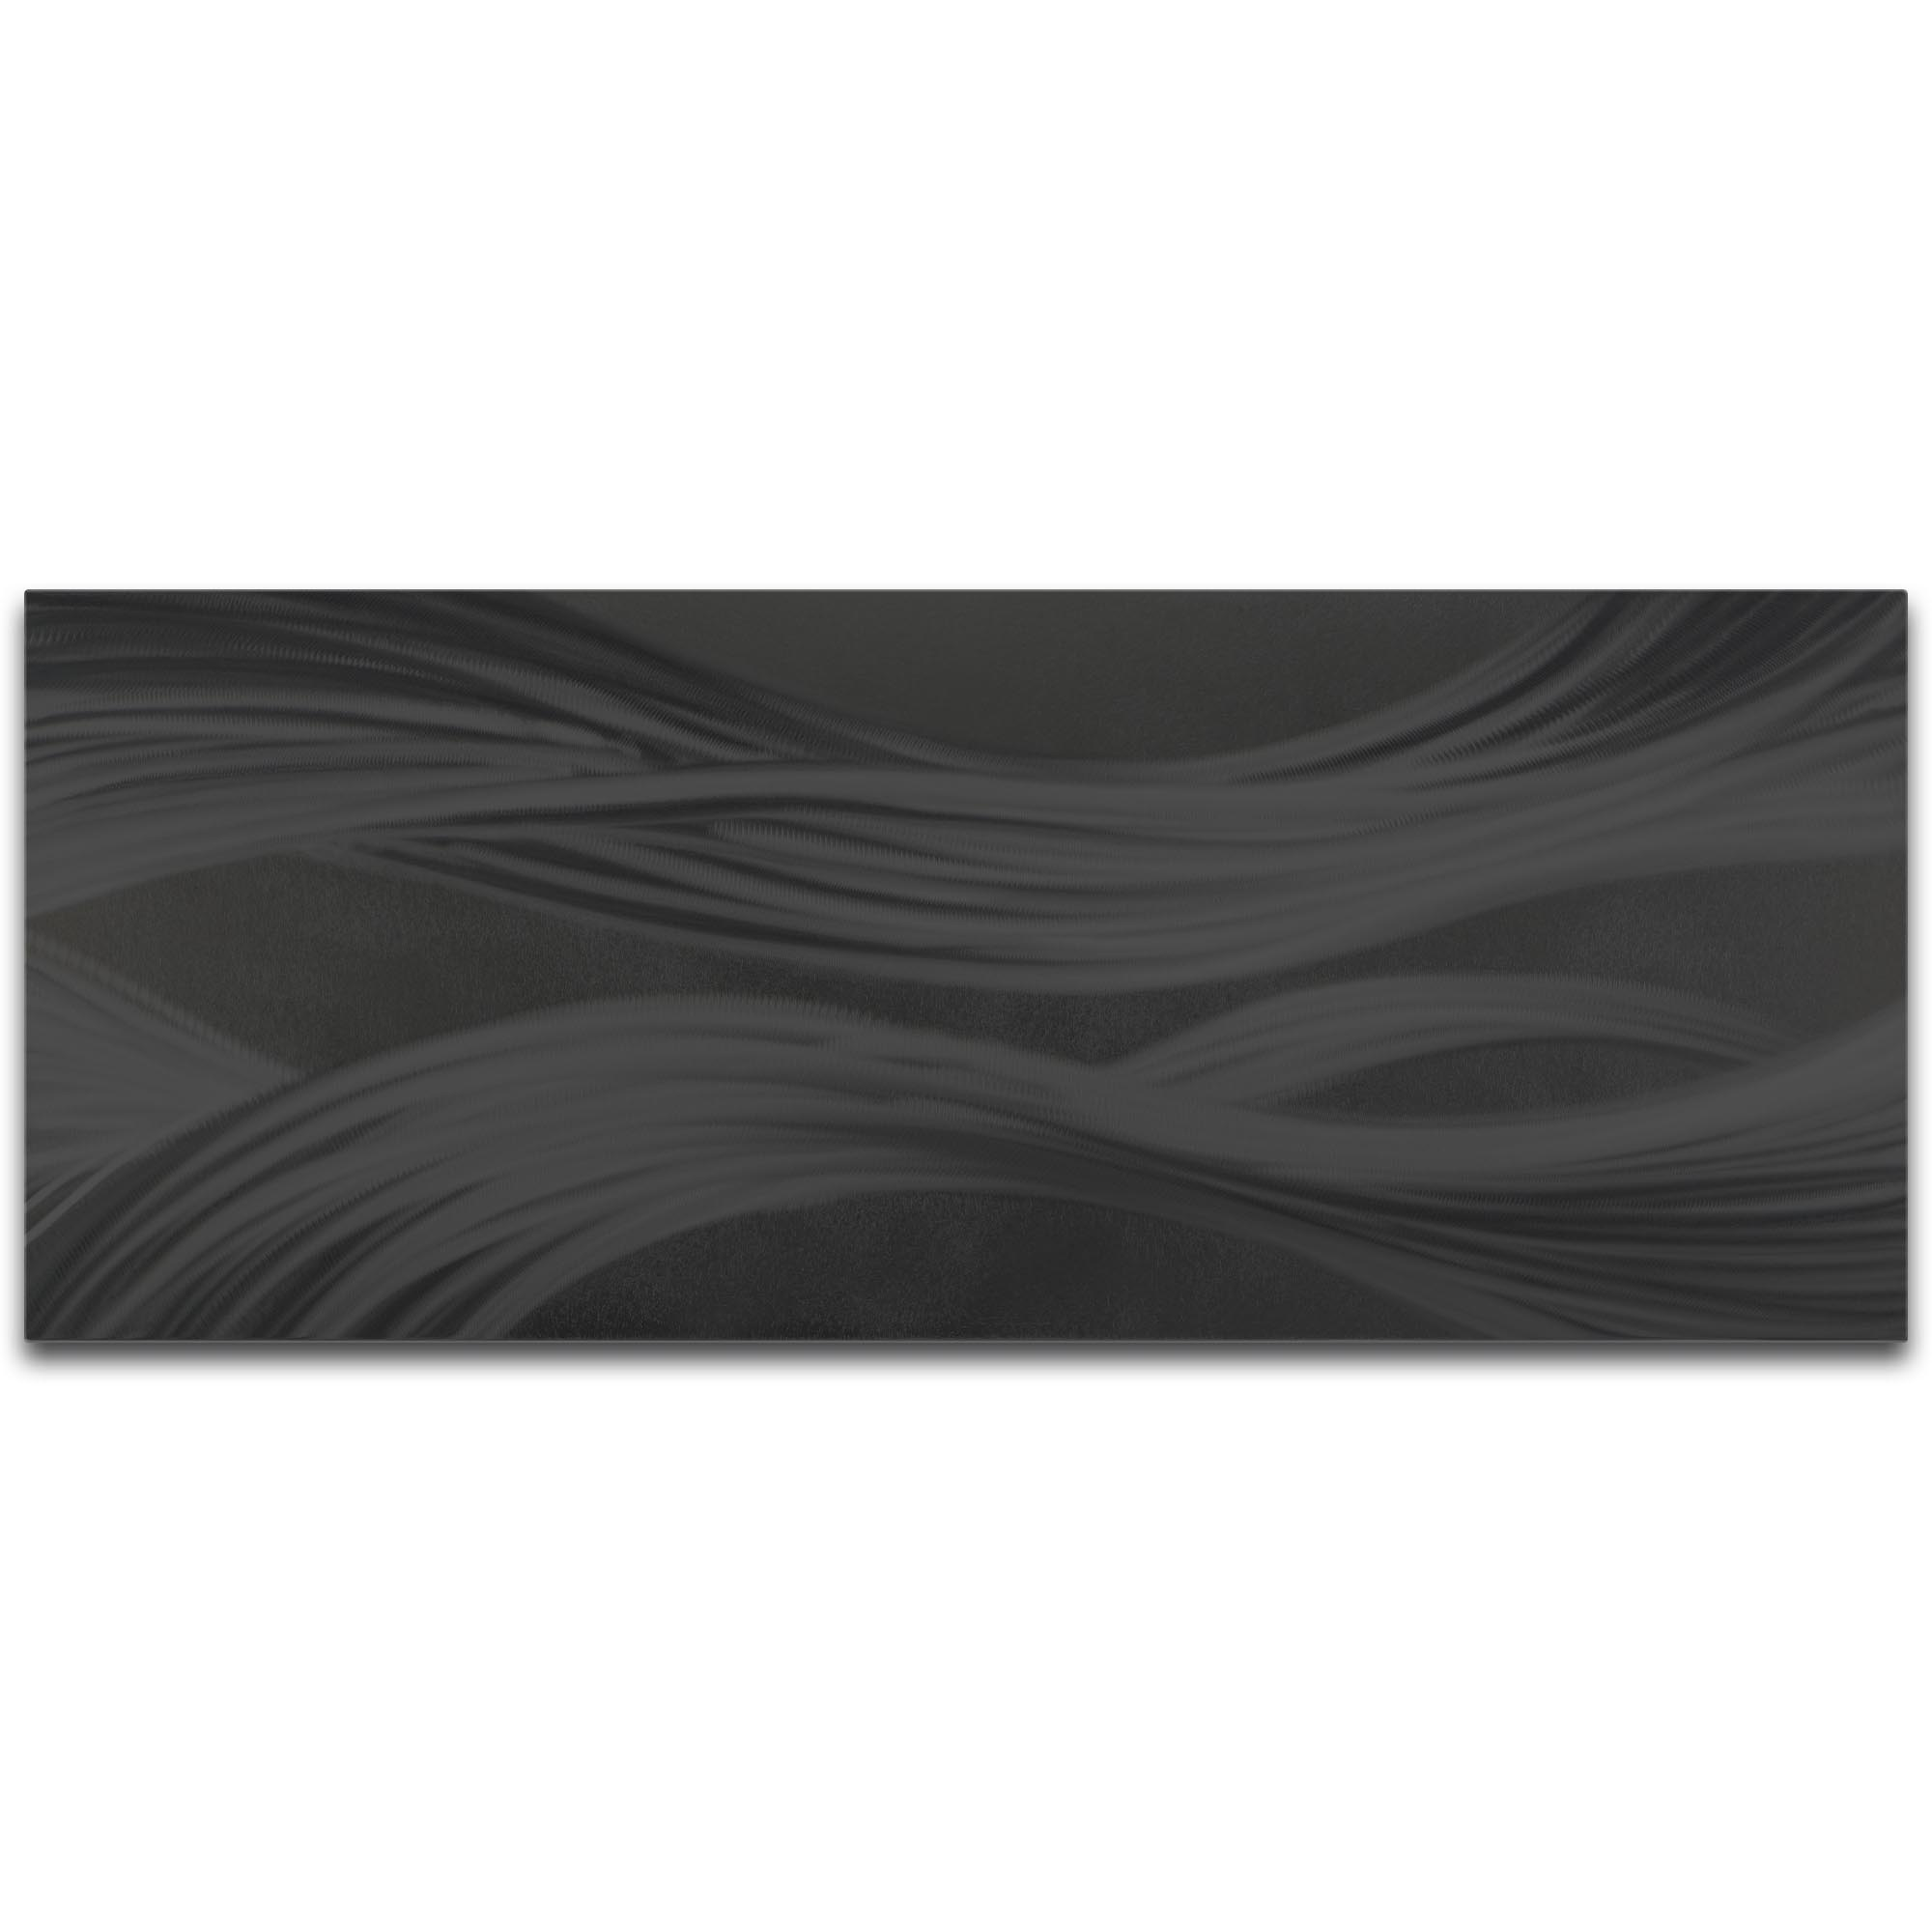 Helena Martin 'Black Ribbons' 48in x 19in Original Abstract Metal Art on Ground and Painted Metal